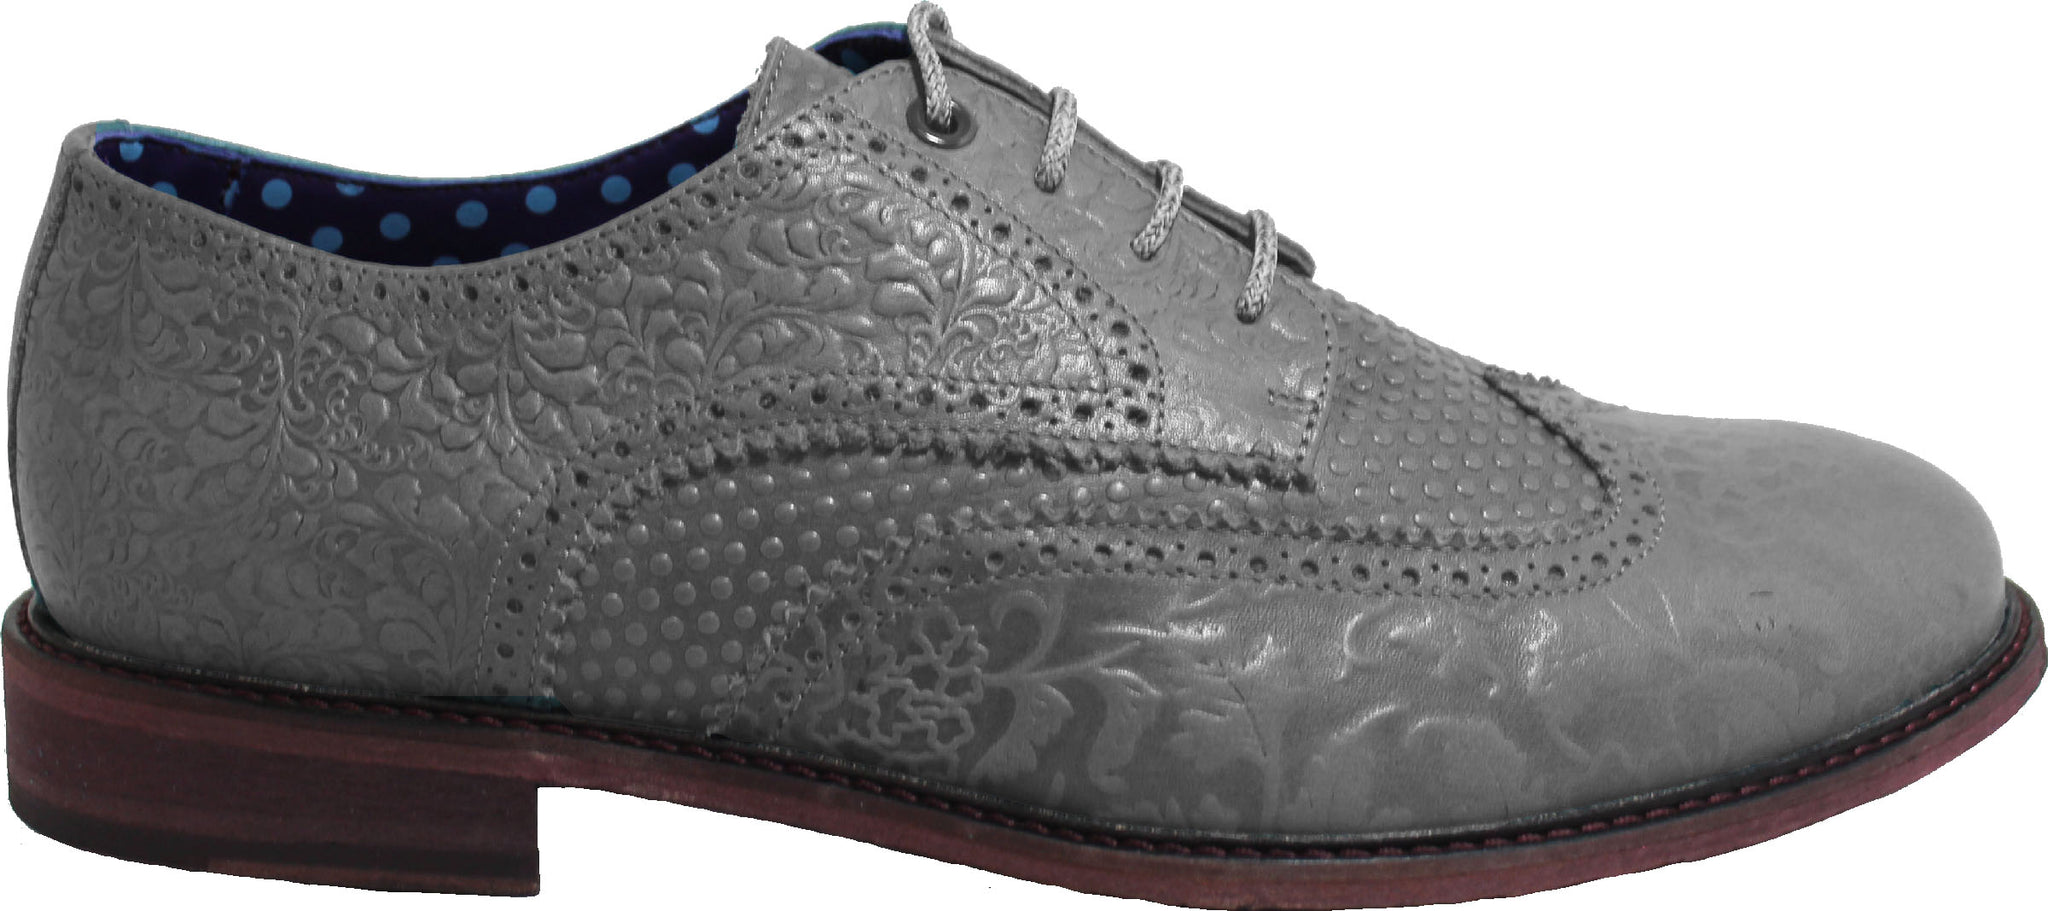 FOLLIE Brogue in Flannel - Lords Of Harlech